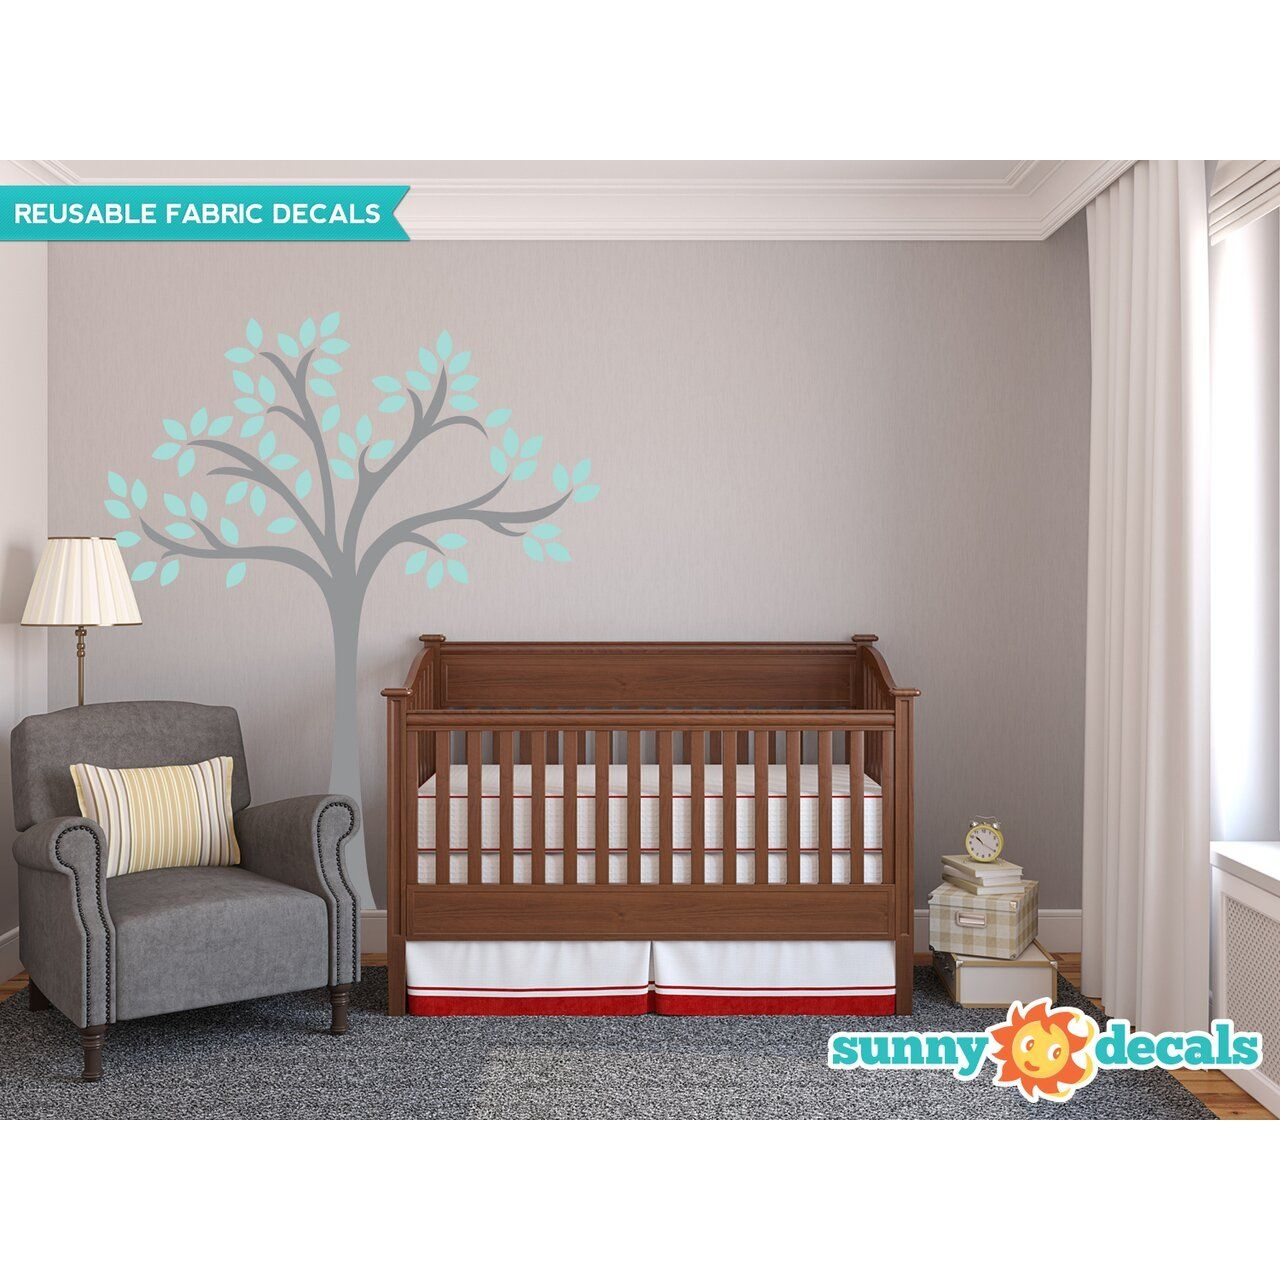 Sunny Decals Beautiful Tree Wall Decal  Wayfair